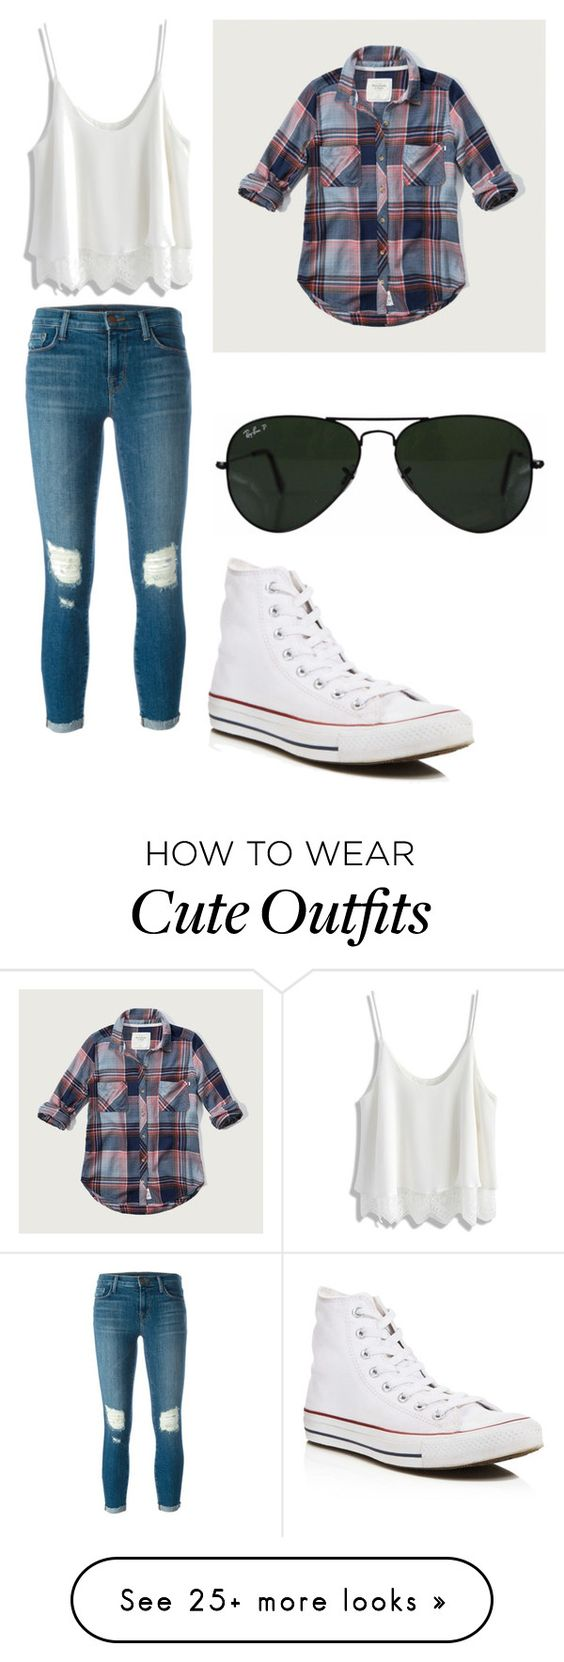 """""""Cute outfit..... The flannel would go over the white t-shirt"""" by wyntersmail on Polyvore featuring Ray-Ban, J Brand, Chicwish, Converse and Abercrombie & Fitch"""